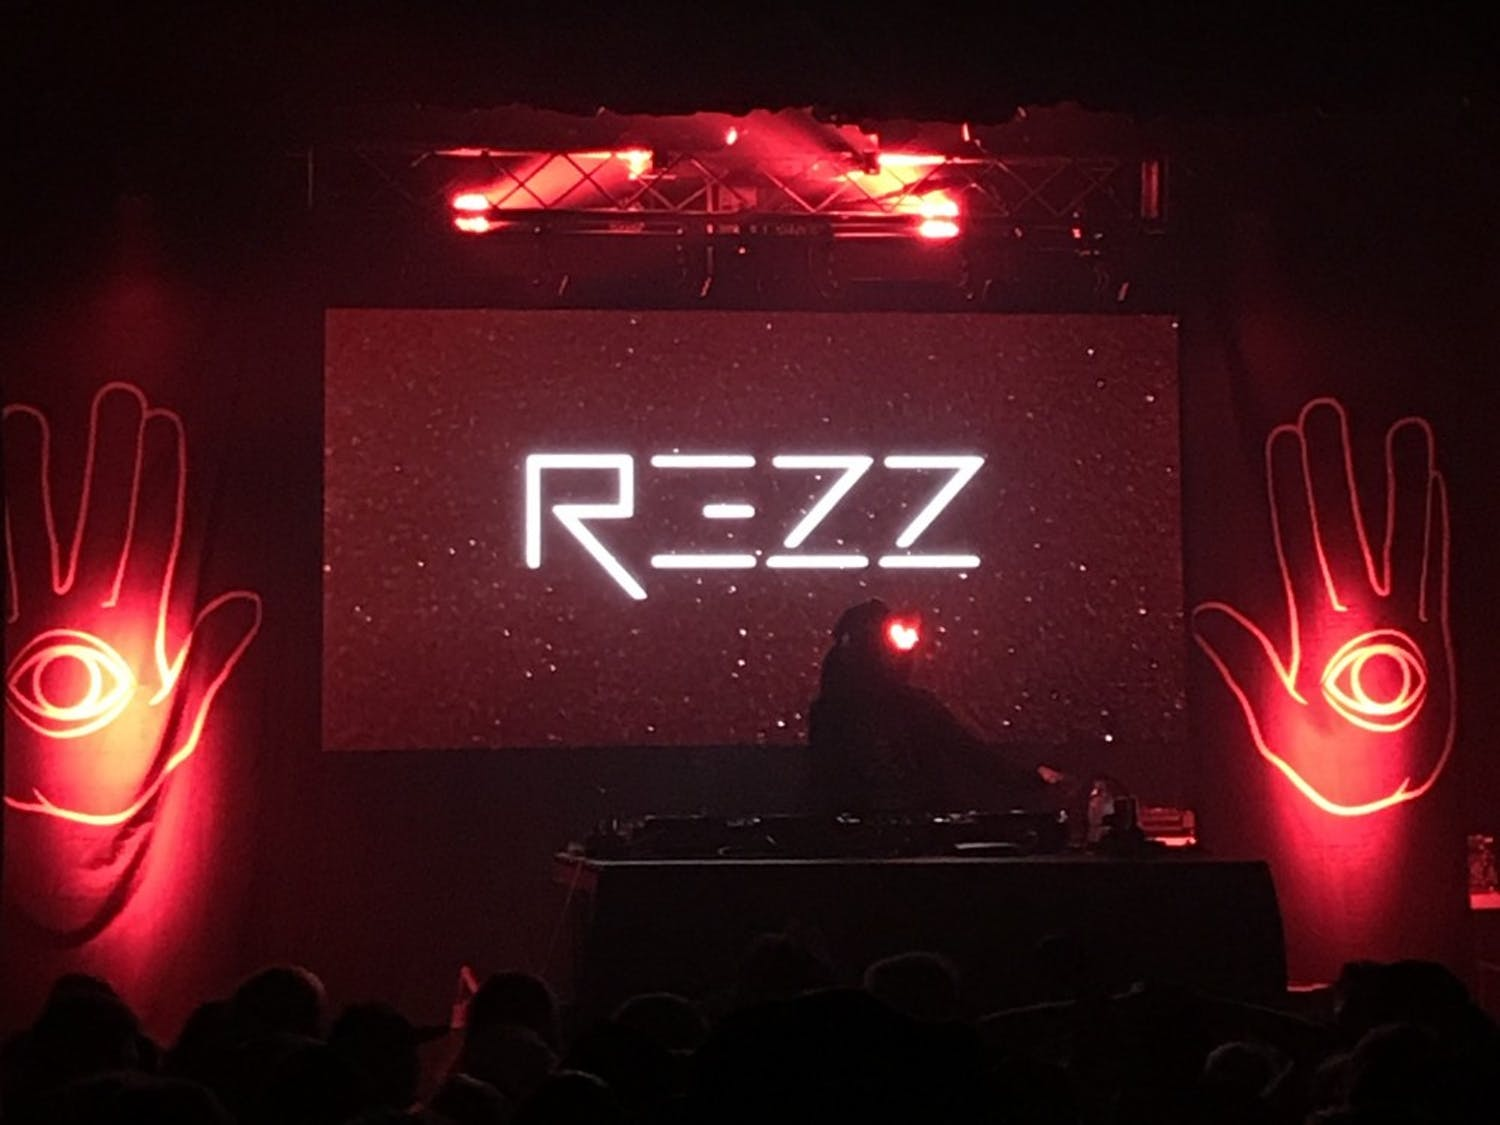 Canadian DJ Rezz bringstrippy visuals and heavy bass to a sold-out show at the Majestic Theatre last Thursday.